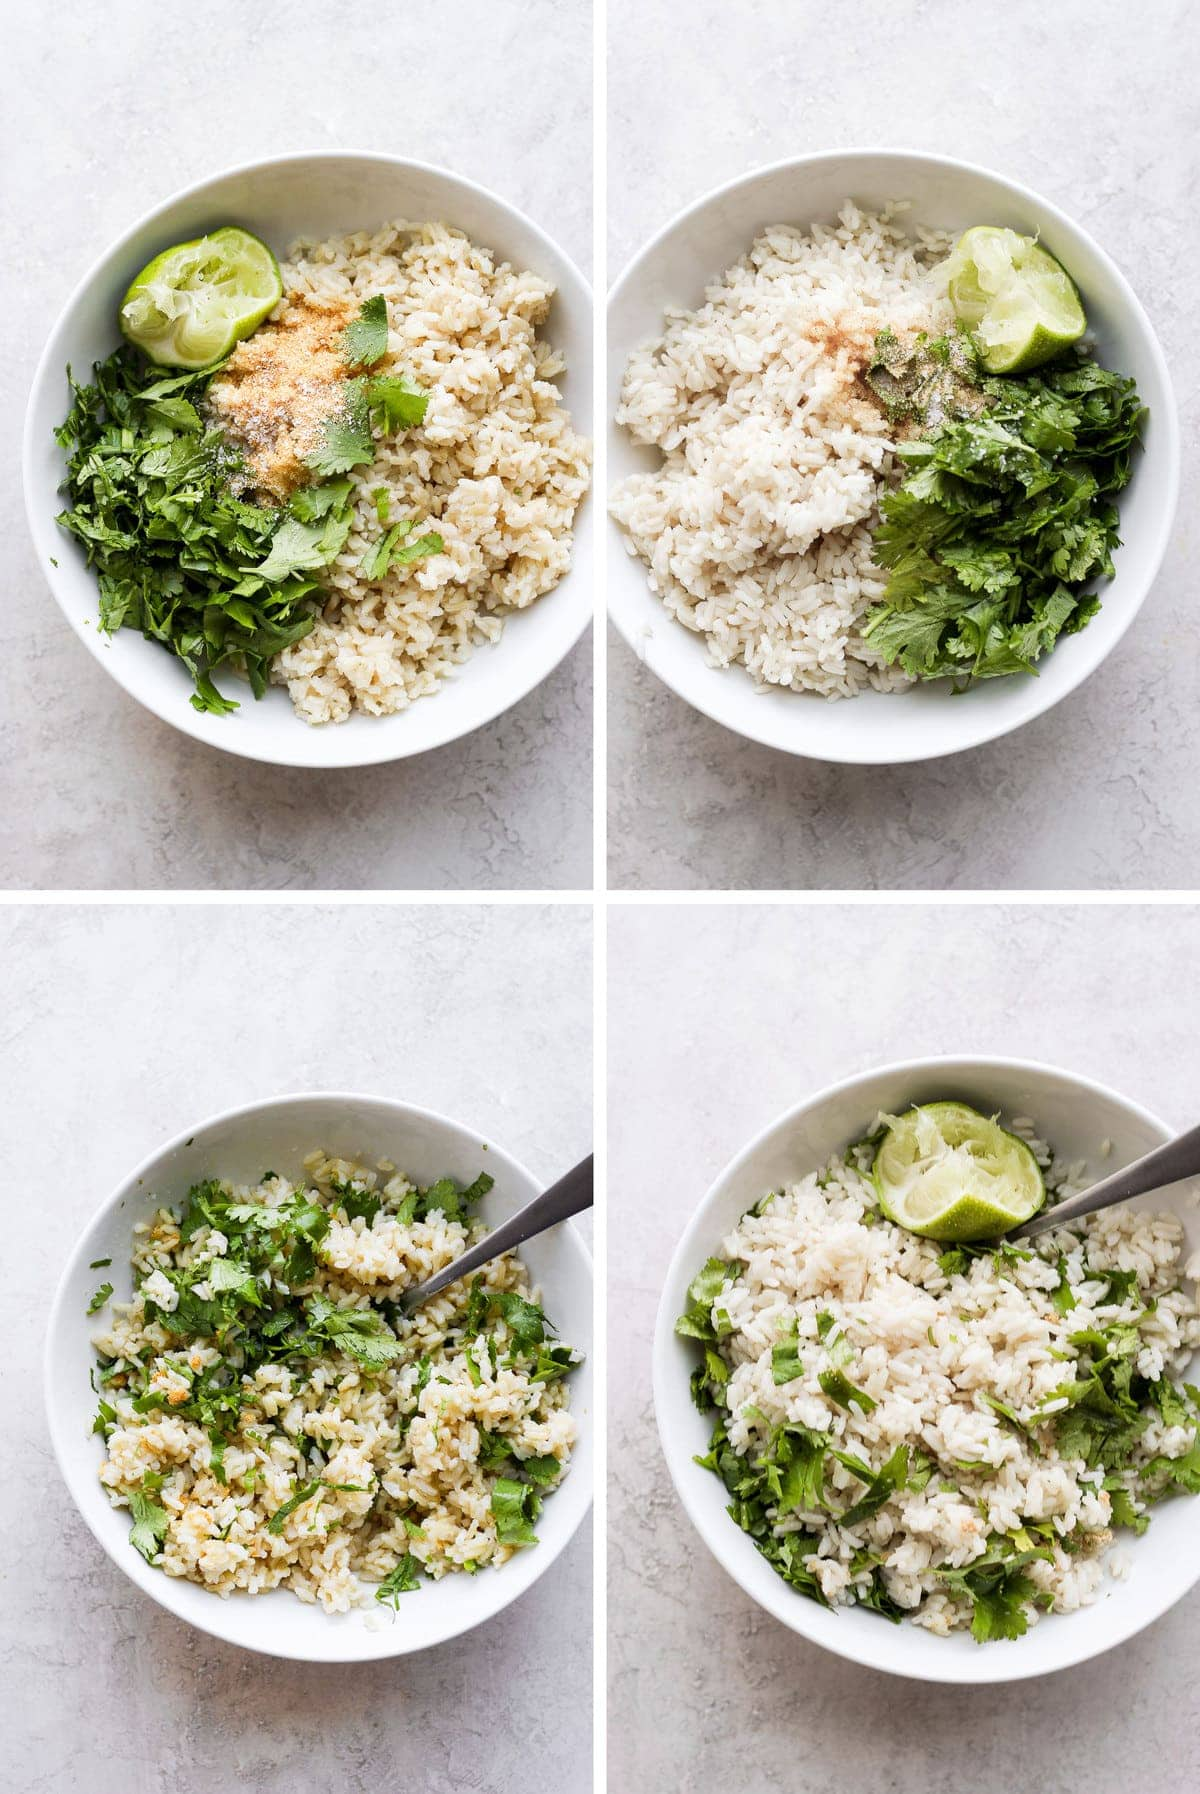 Every step for making cilantro lime rice